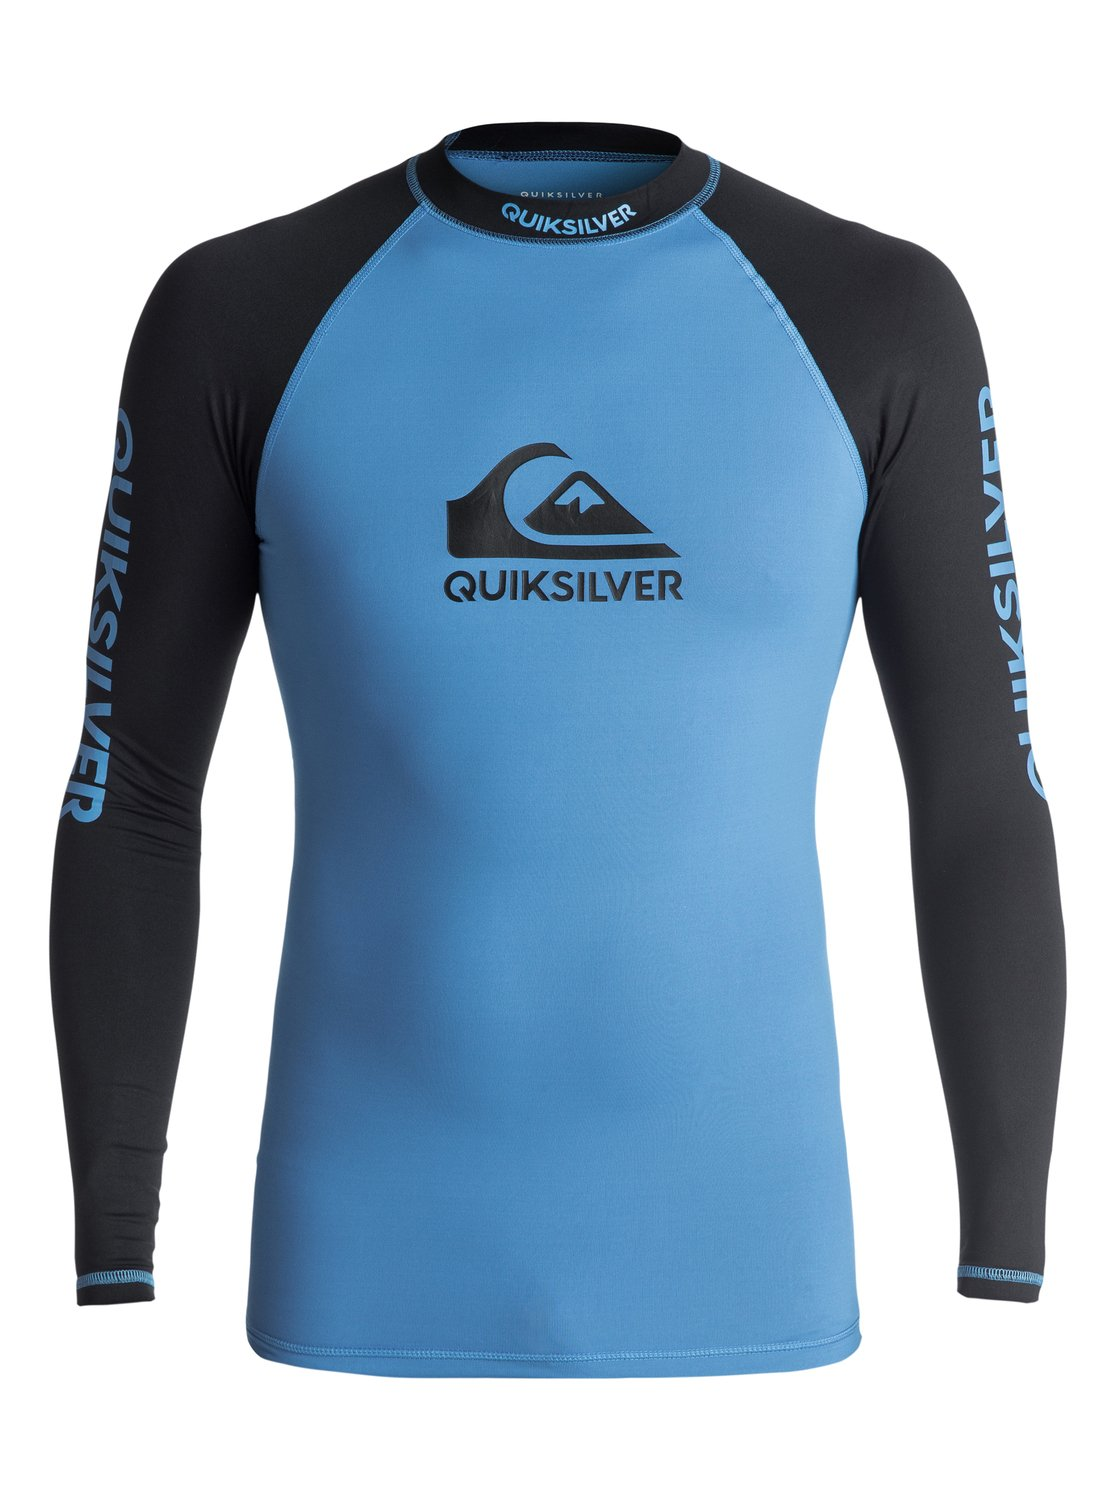 Lycra Quiksilver On Tour Long Sleeve Rushguard (Brilliant Blue / Black) Ss18